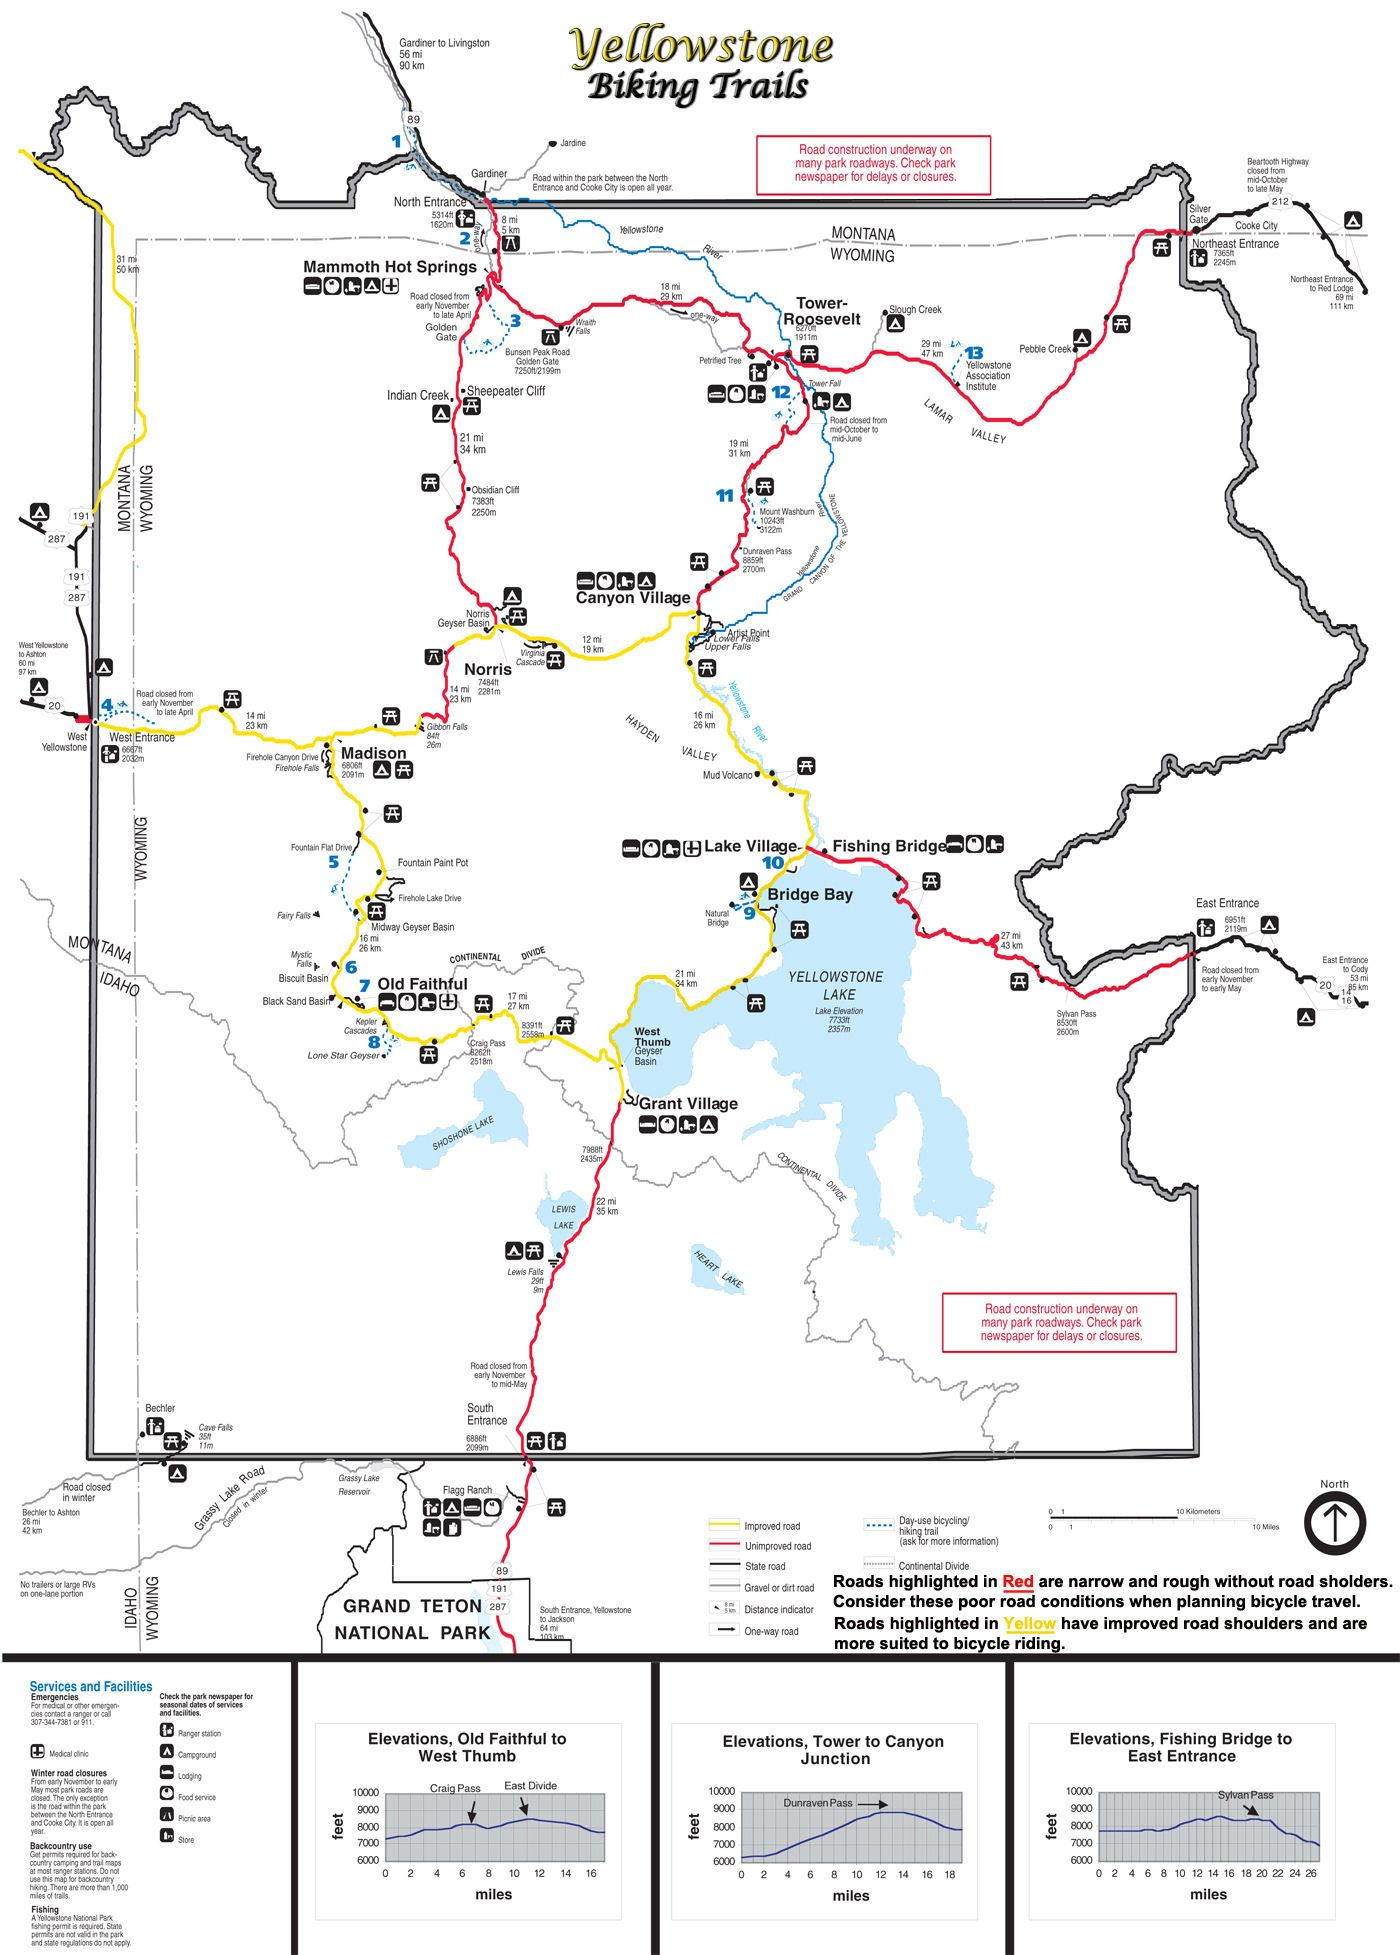 Yellowstone Bike Road Map | Yellowstone | Yellowstone vacation ... on sawtooth national forest road map, national park to park highway map, bridger teton national forest road map, denali national park and preserve road map, wyoming road map, yellowstone geyser map, manufacturing by state map, pawnee national grasslands road map, detailed idaho road map, wyoming state map, gallatin national forest road map, yellowstone river old map, helena national forest road map, utah road map, black hills national forest road map, west yellowstone road map, kisatchie national forest road map, yellowstone driving map, kings canyon national park road map, north yellowstone map,